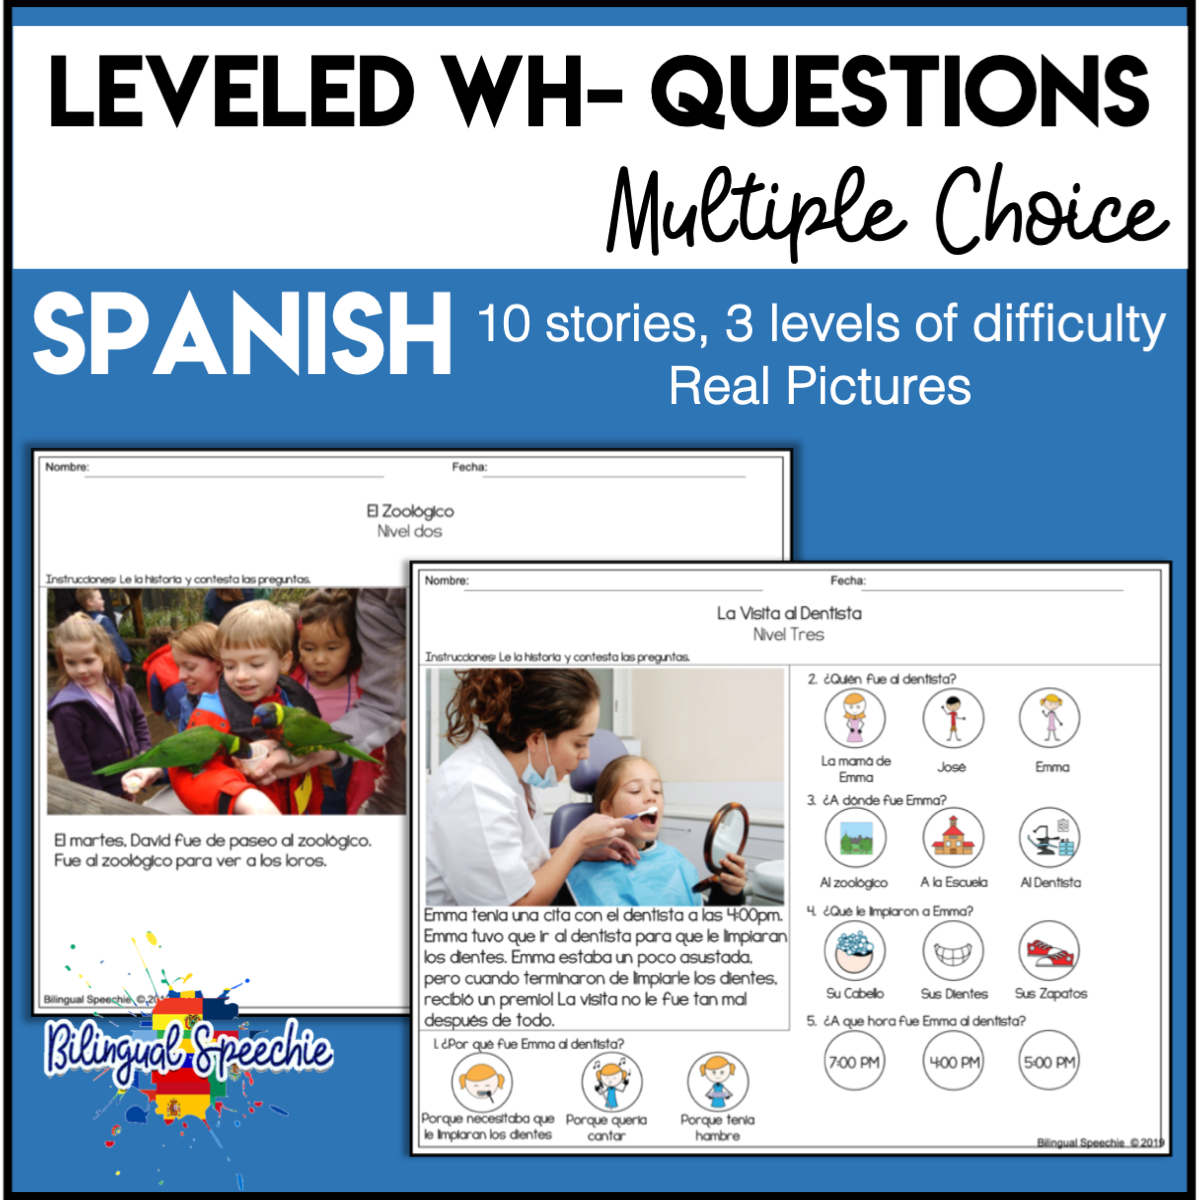 Spanish | Leveled WH- Questions